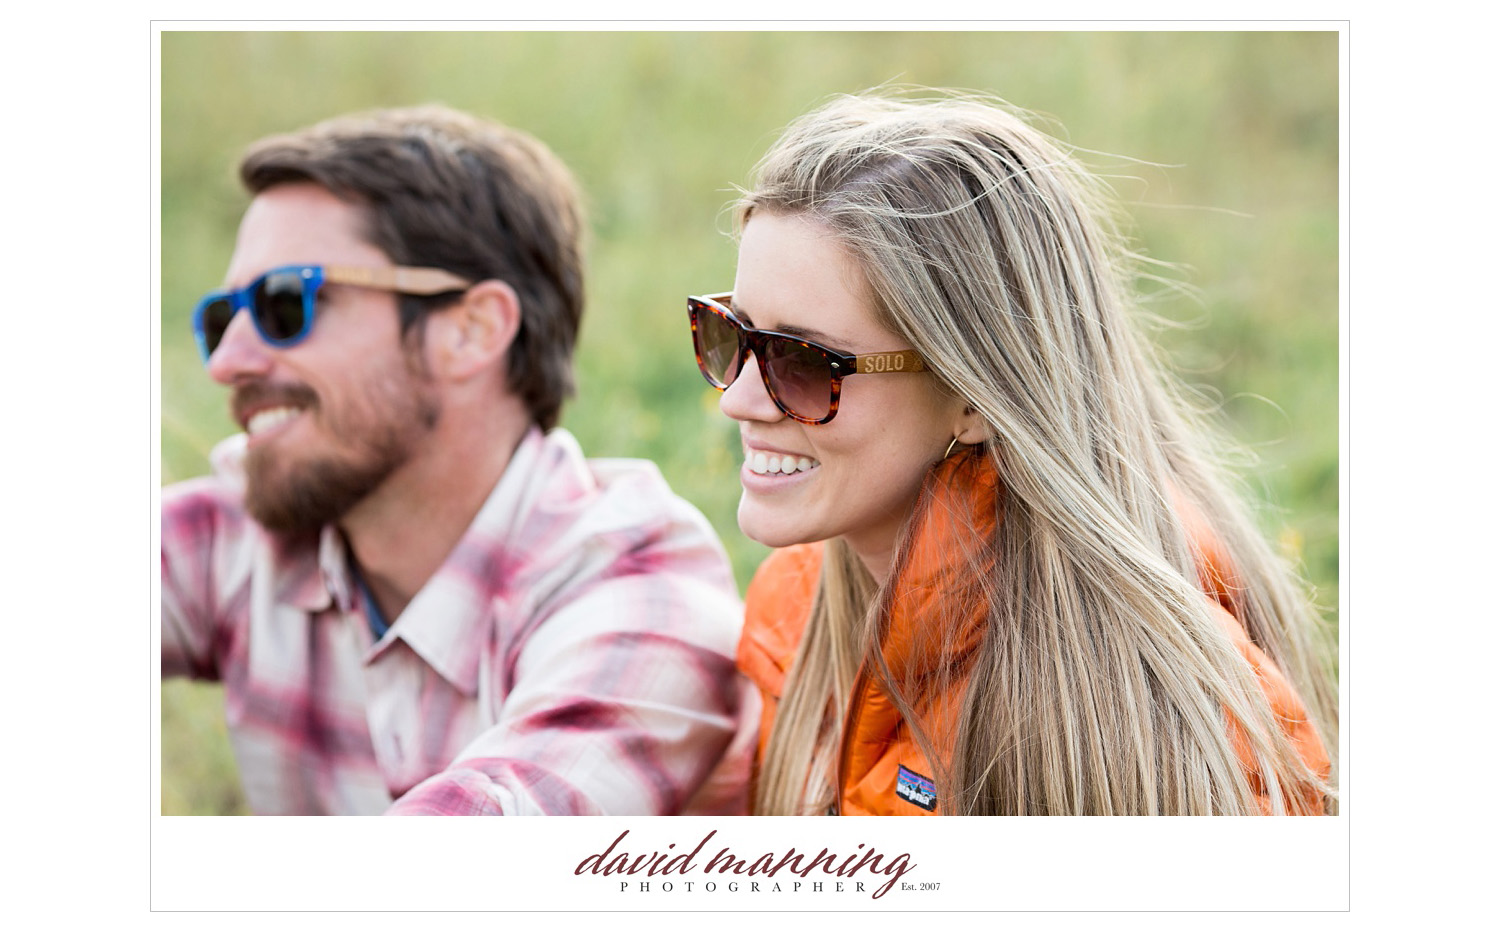 SOLO-Eyewear--Commercial-Editorial-Photos-David-Manning-Photographers-0040.jpg